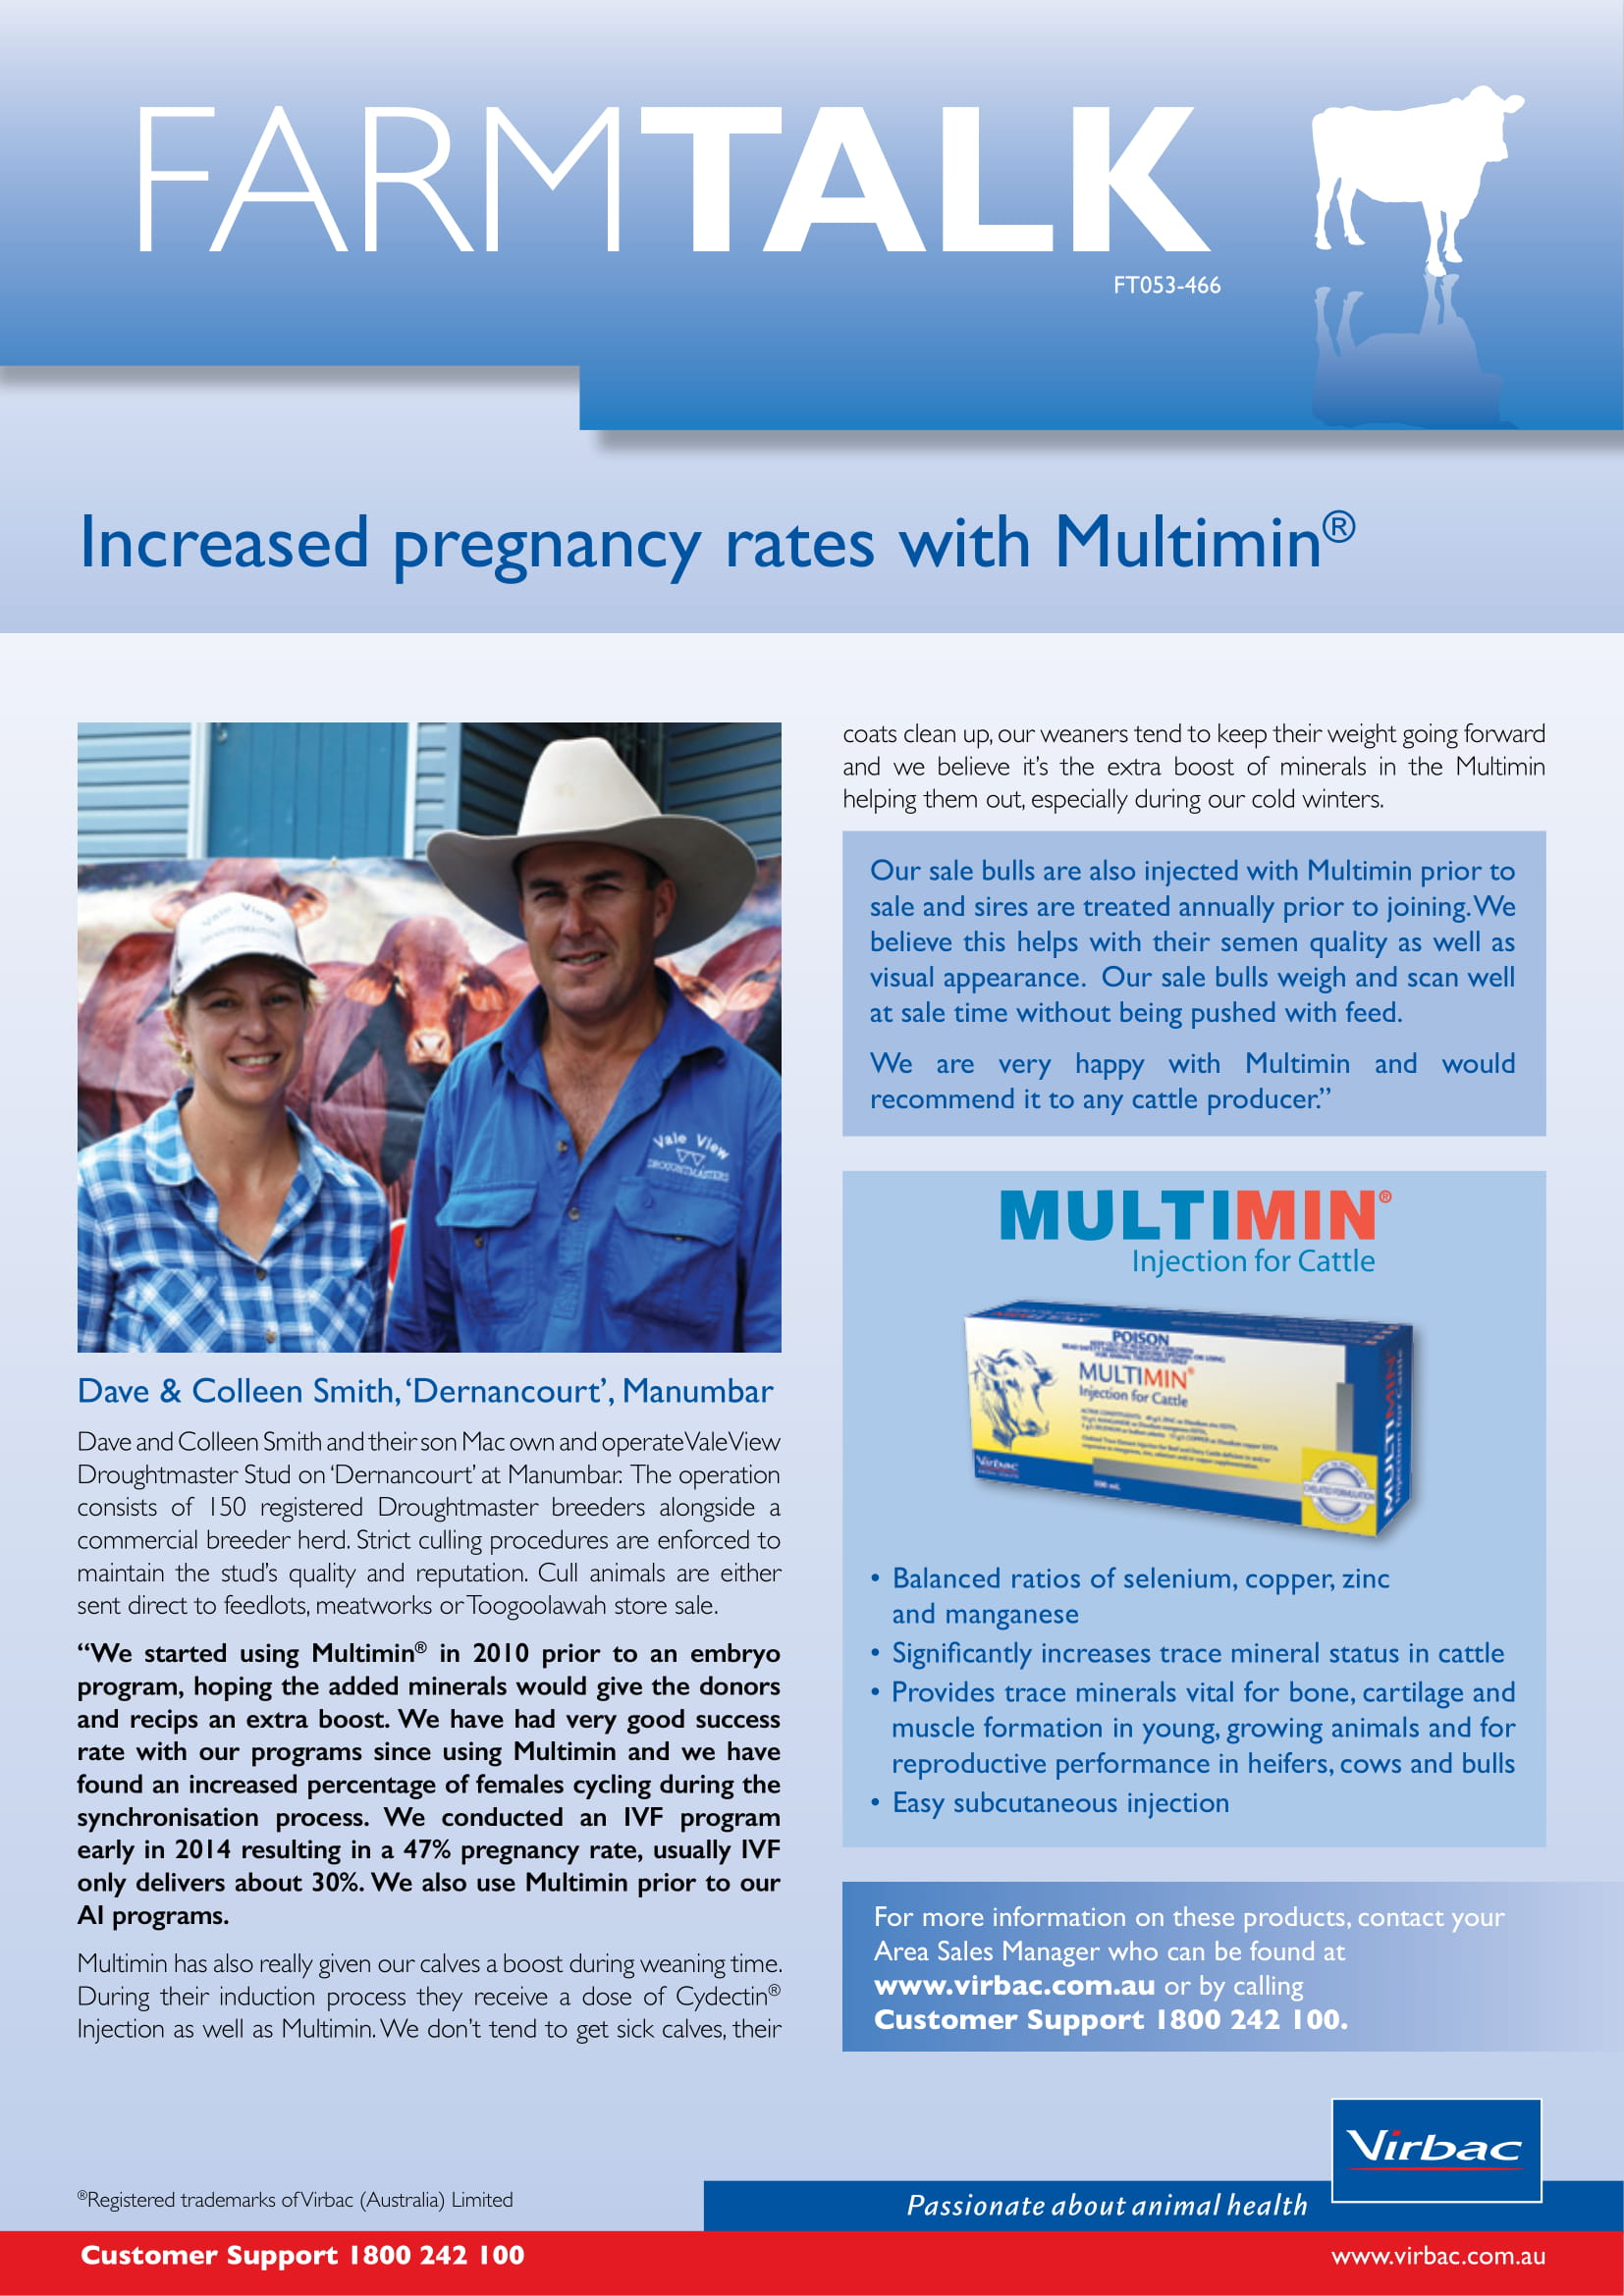 2014 Multimin farmtalk